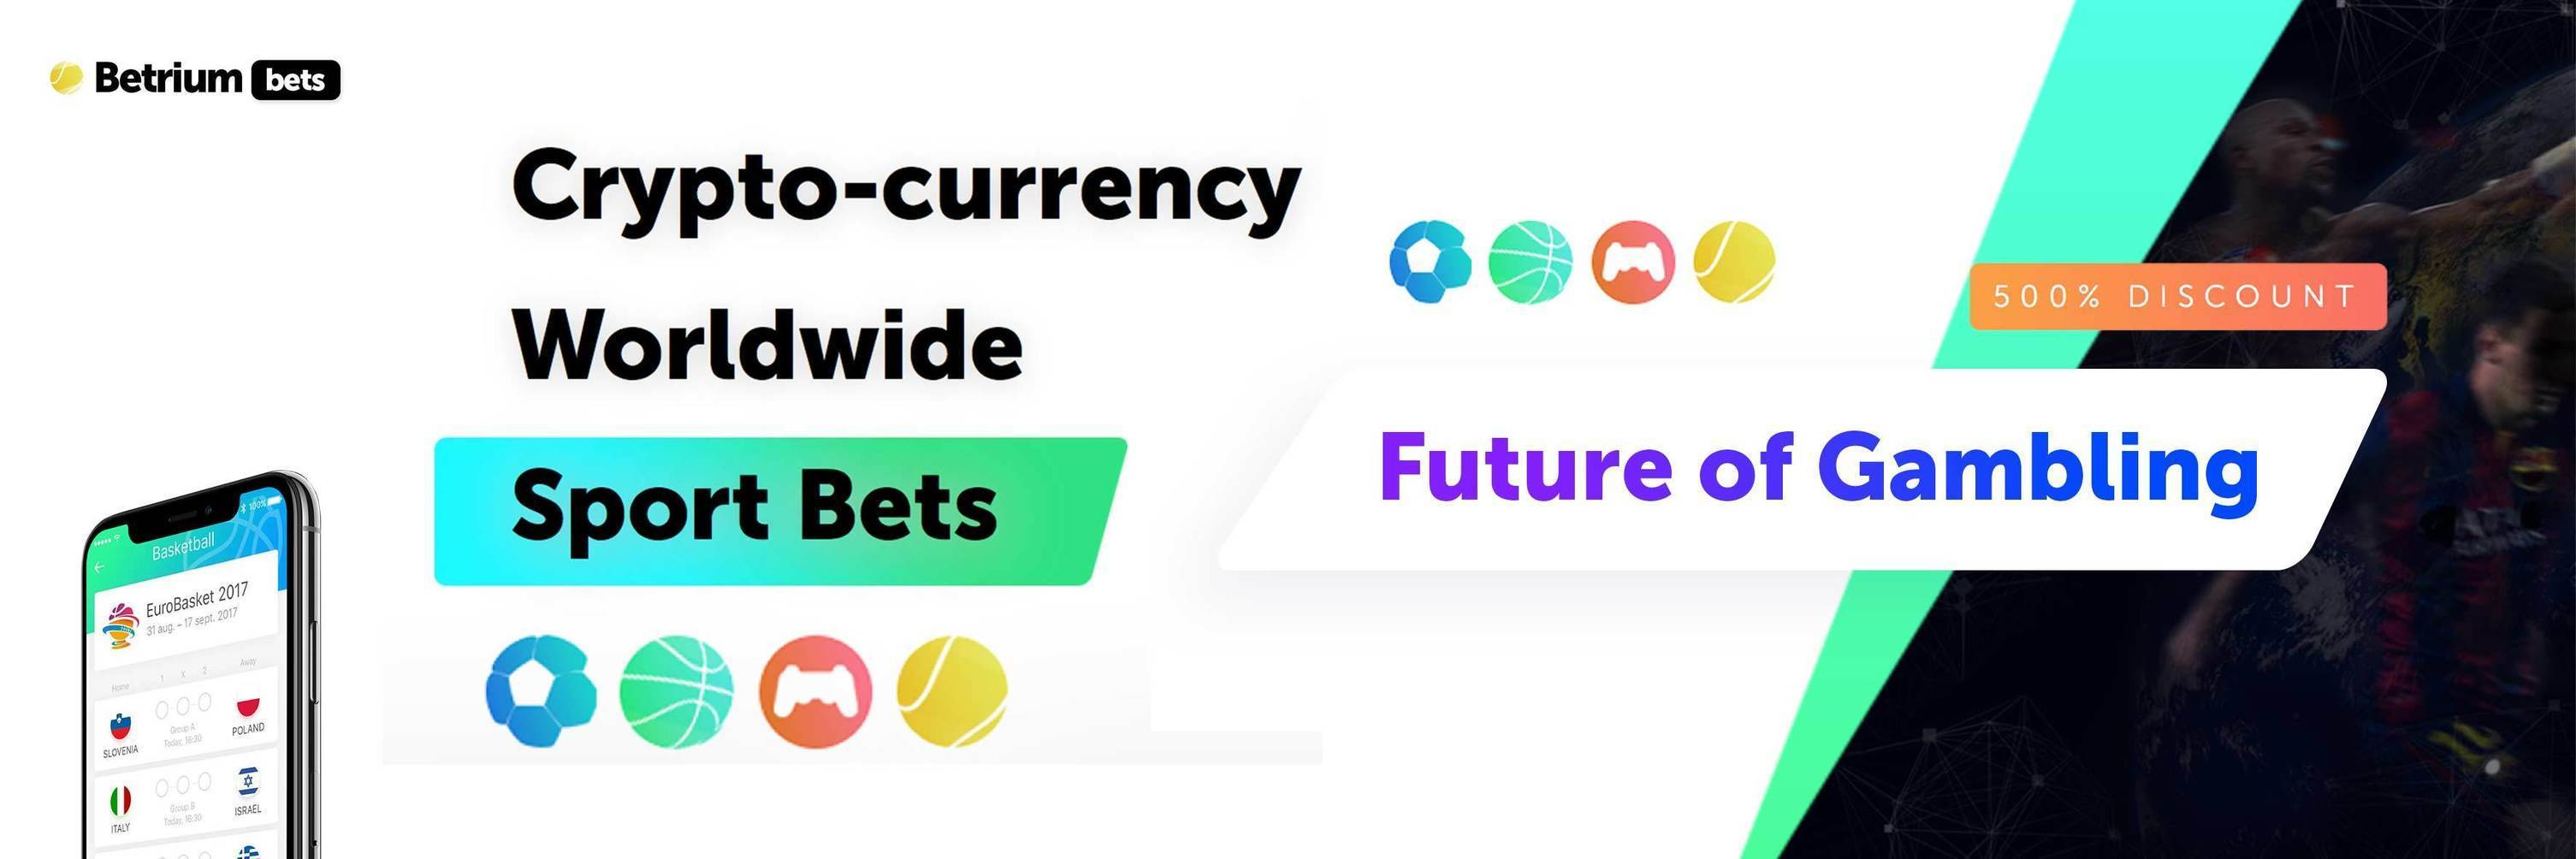 Betrium launches pre ico worldwide bookmaker betrium launches pre ico worldwide bookmaker malvernweather Image collections